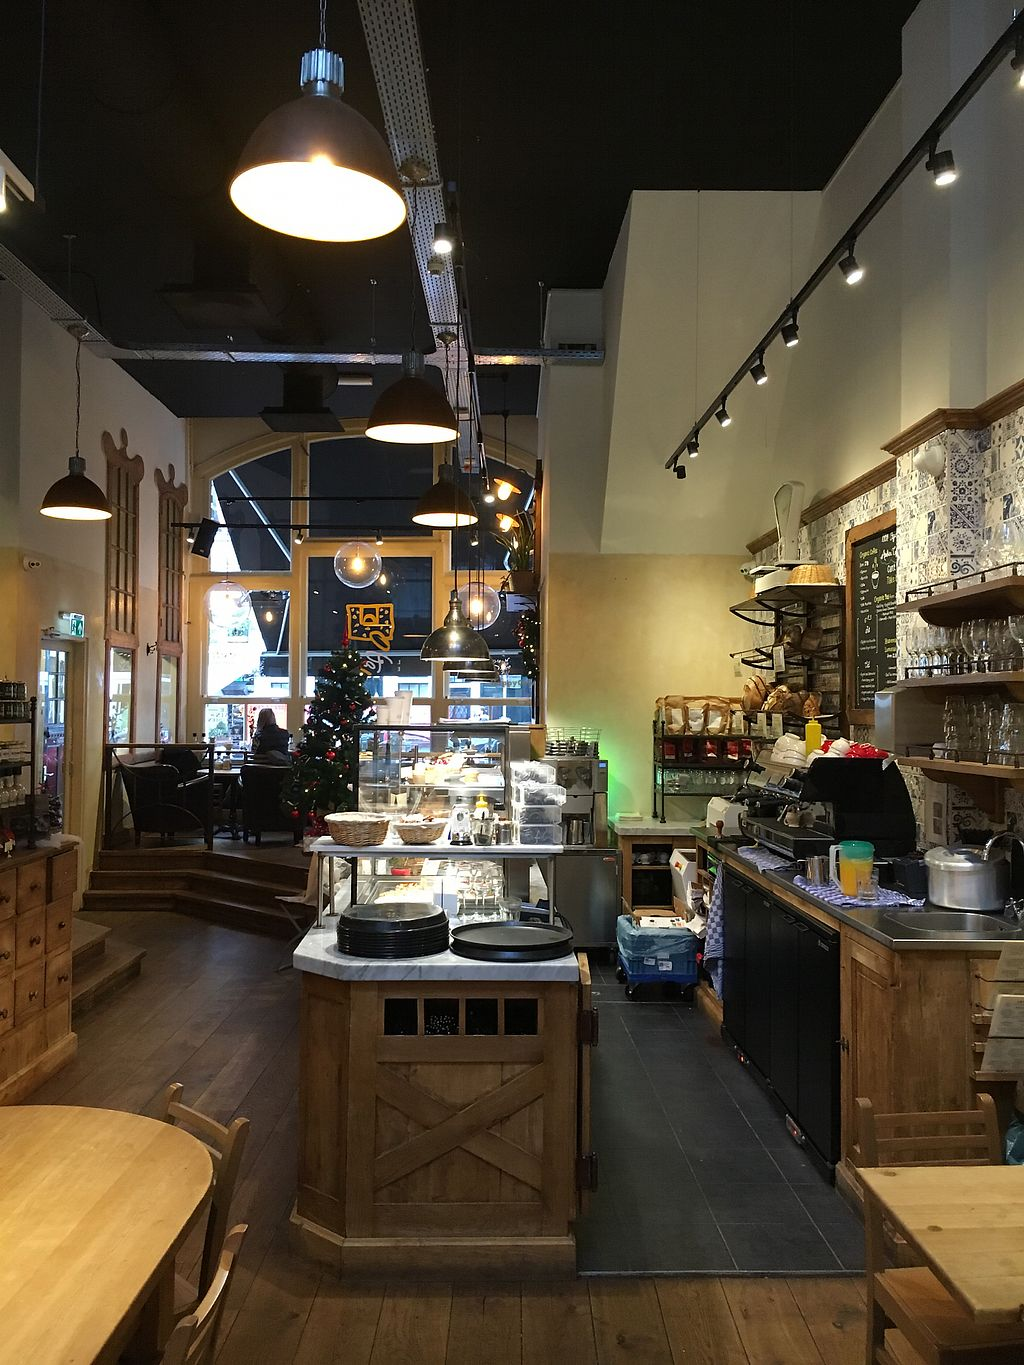 "Photo of Le Pain Quotidien - Nieuwezijds  by <a href=""/members/profile/hack_man"">hack_man</a> <br/>Inside  <br/> January 2, 2018  - <a href='/contact/abuse/image/84213/342002'>Report</a>"